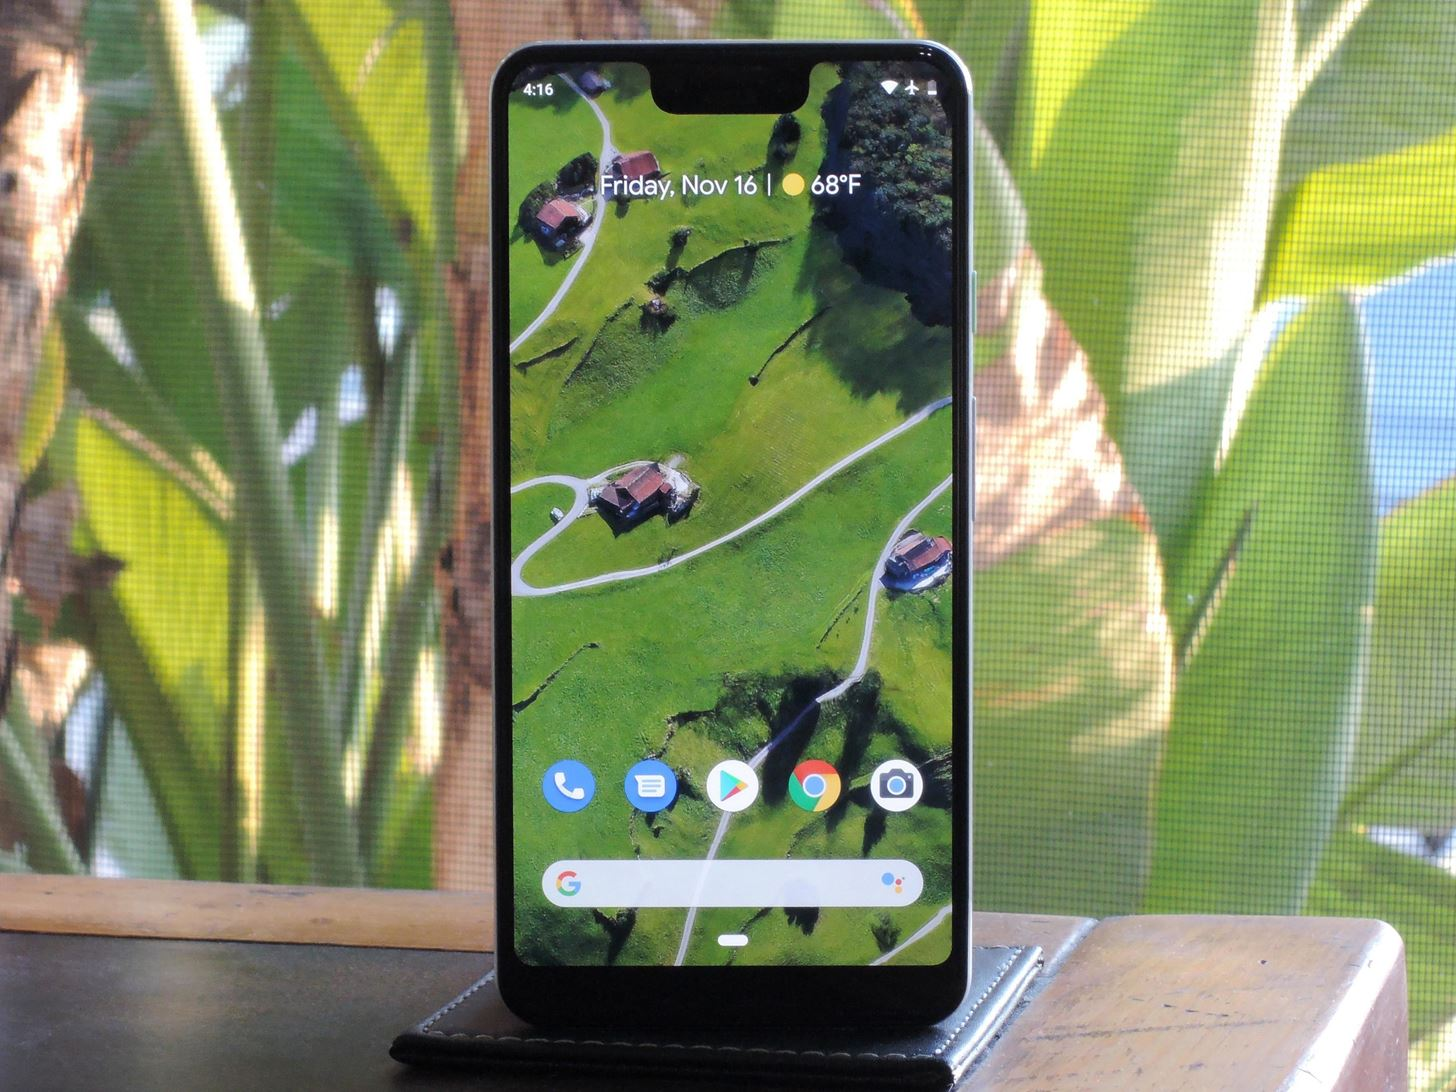 2018 Gift Guide: The Best Phone Accessories to Buy for the Android Users in Your Life